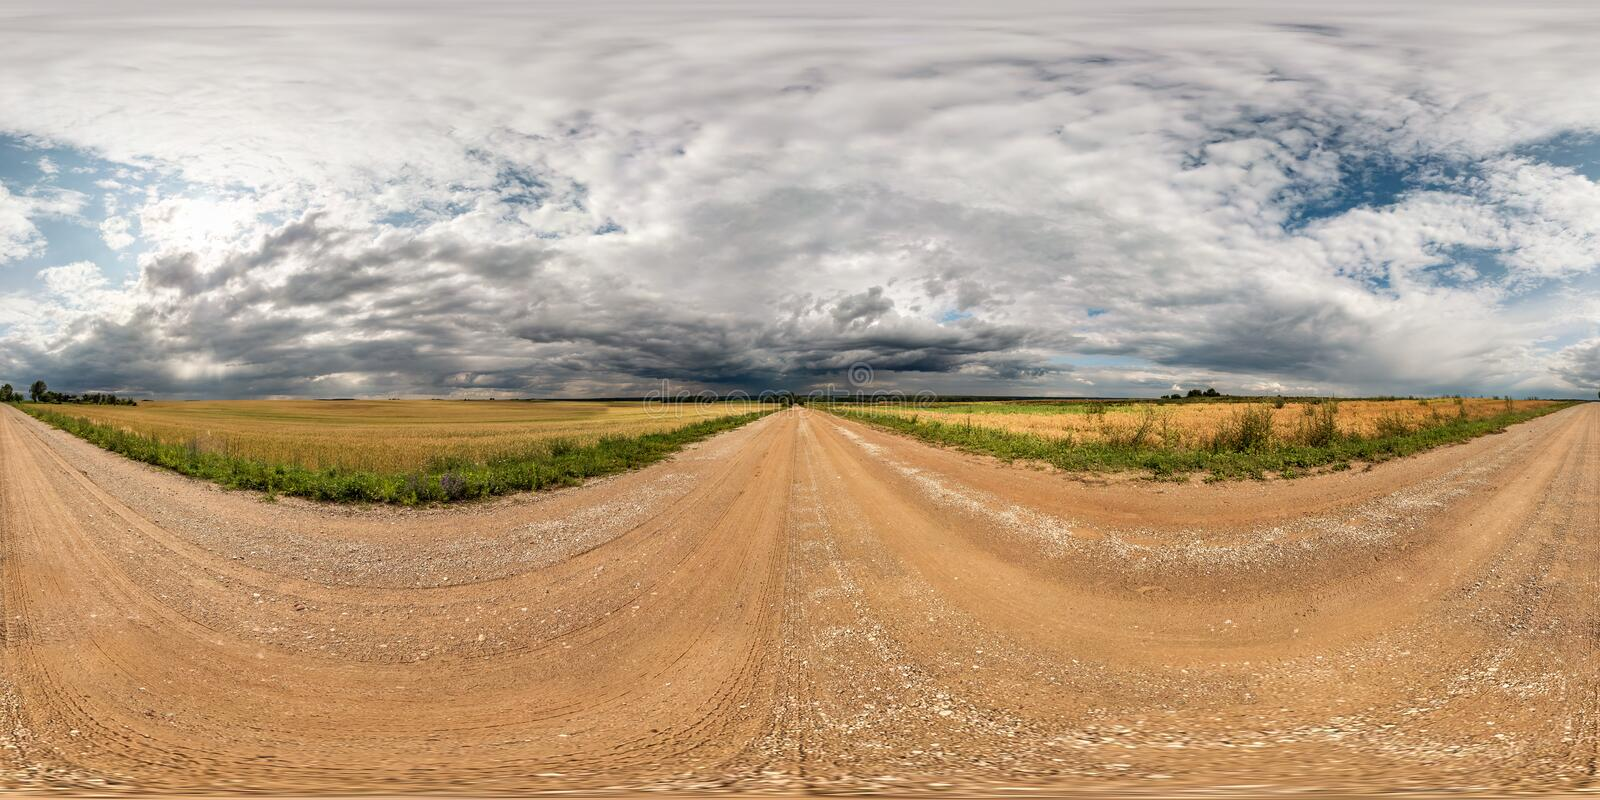 Full seamless spherical hdri panorama 360 degrees angle view on gravel road among fields with awesome clouds before storm in. Equirectangular projection, ready royalty free stock images